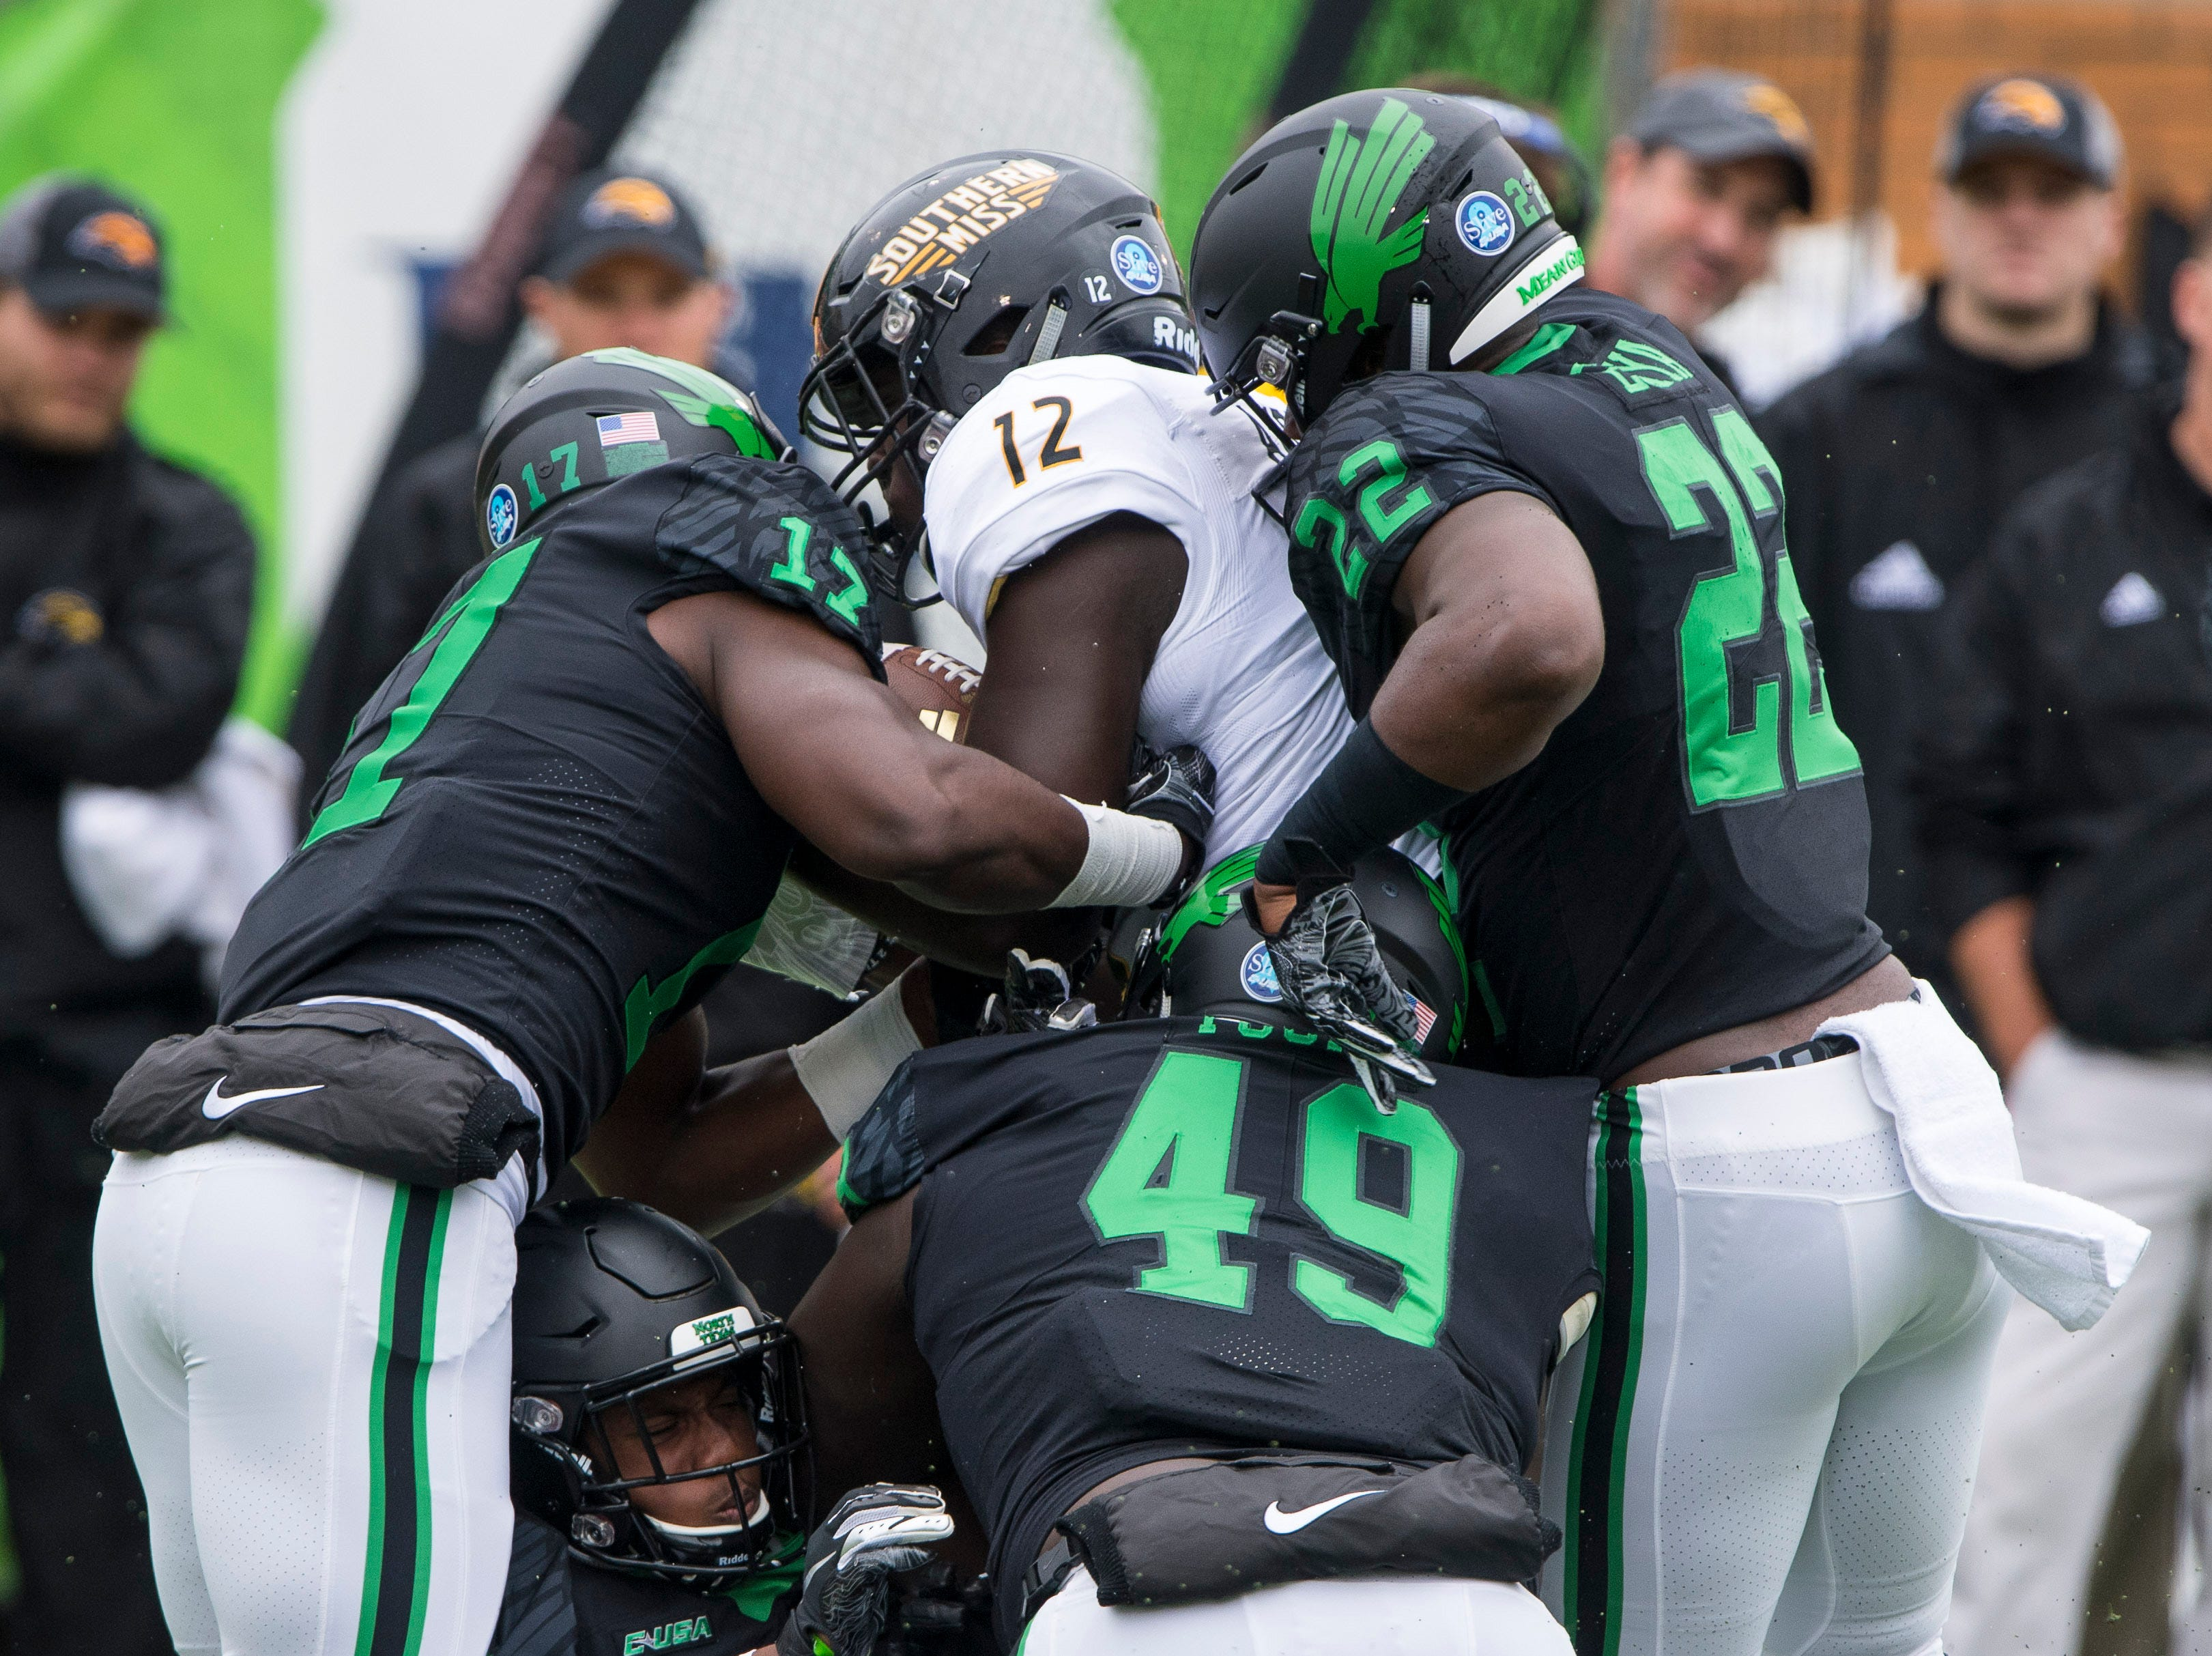 Oct 13, 2018; Denton, TX, USA; Southern Miss Golden Eagles running back Steven Anderson (12) is gang tackled by the North Texas Mean Green defense during the first half at Apogee Stadium.